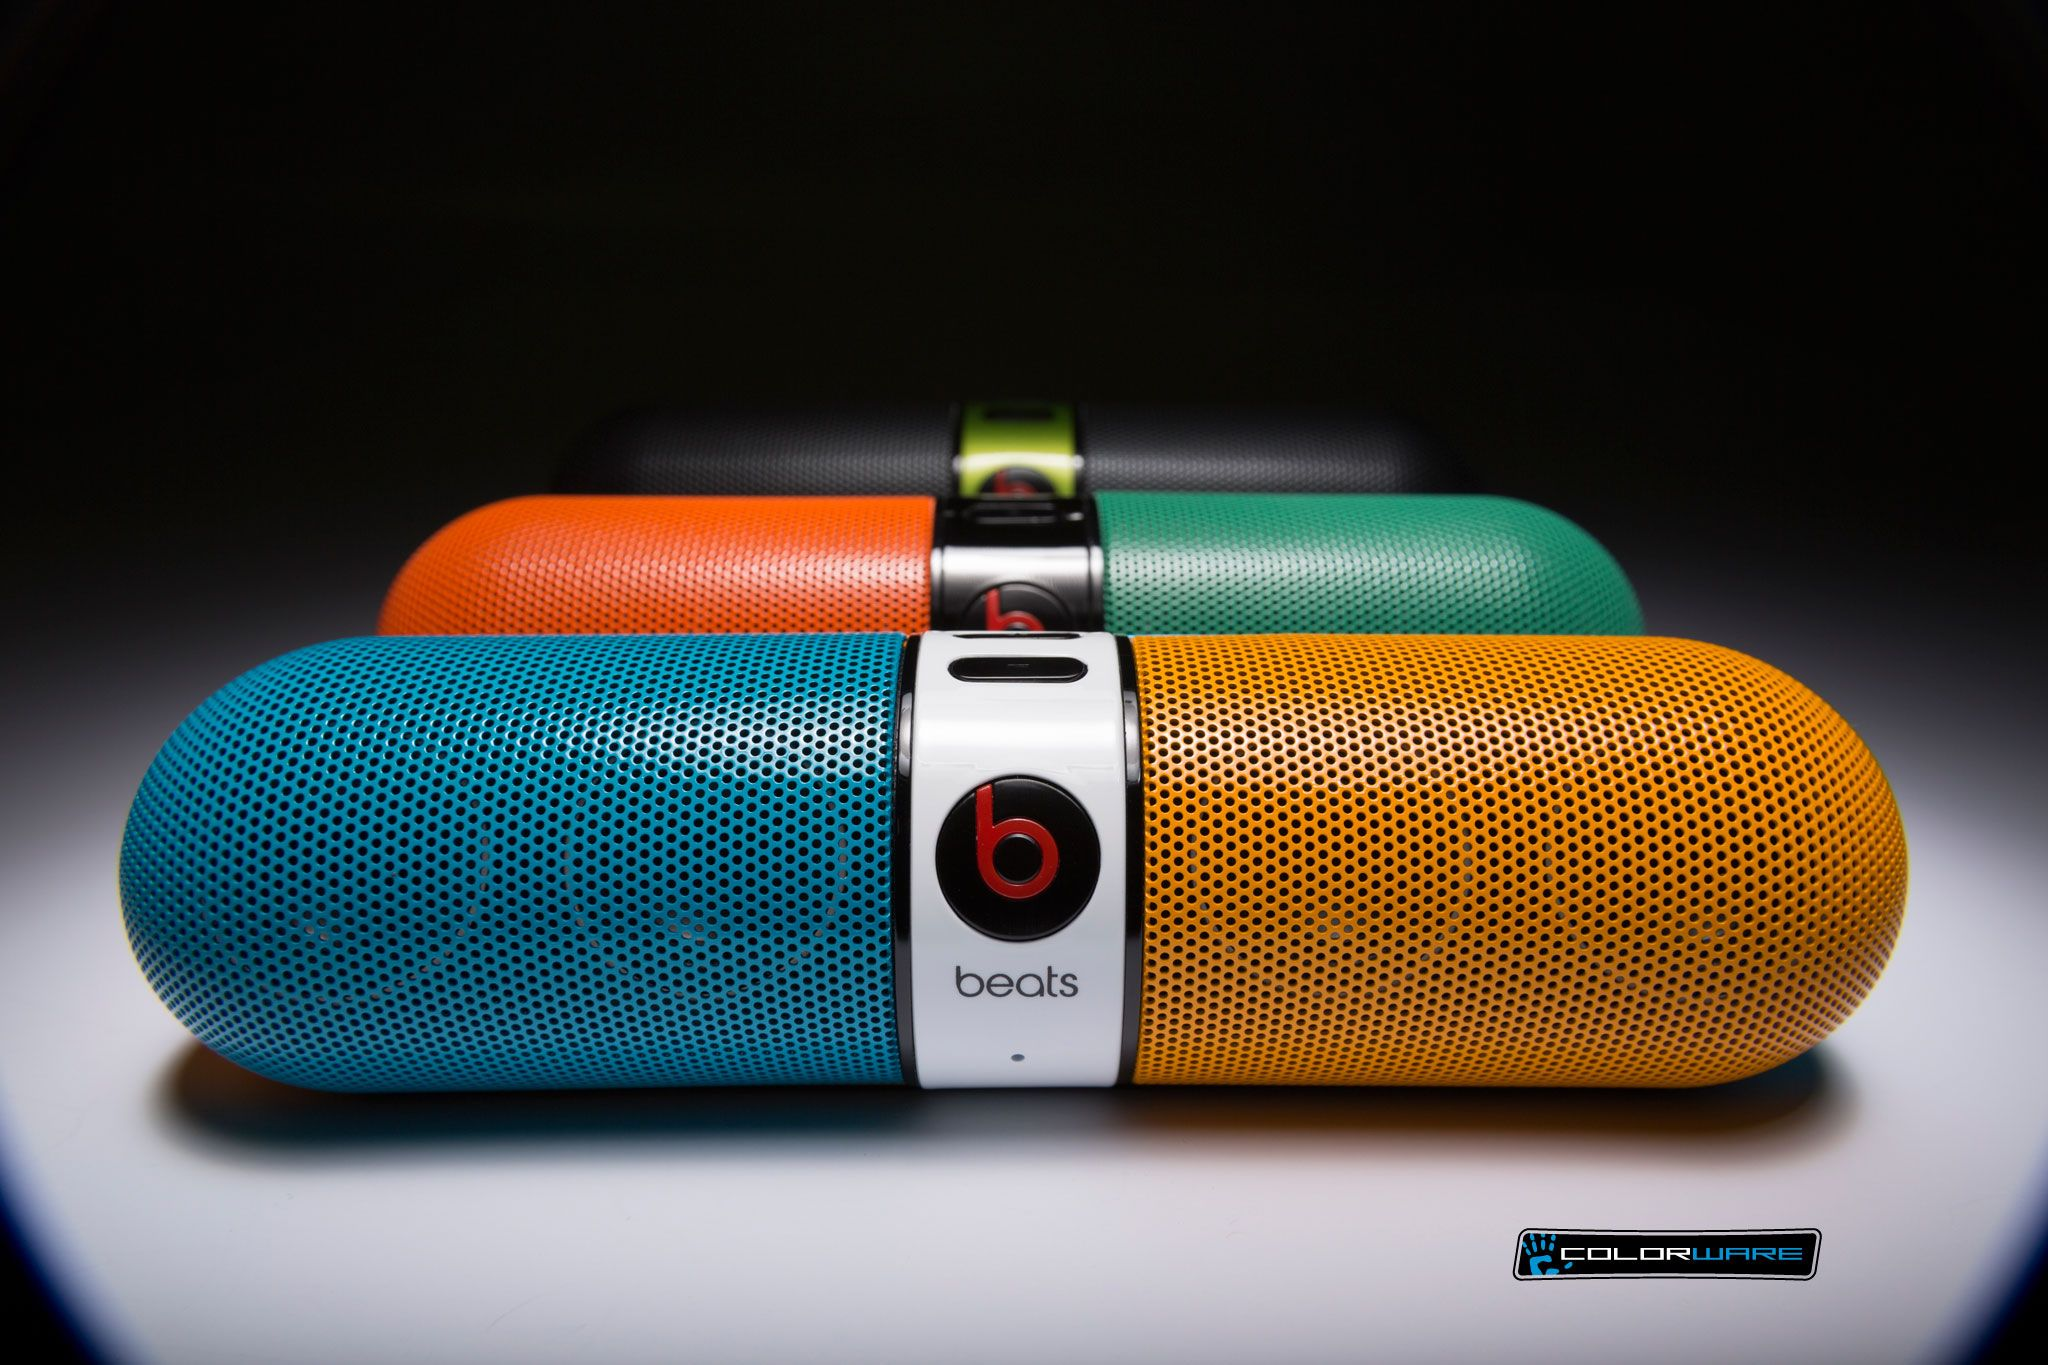 Portable Beats By Dre Pill Speakers Bluetooth Blue Orange Speaker Beatspillspeakers Beatsspeakersonsale